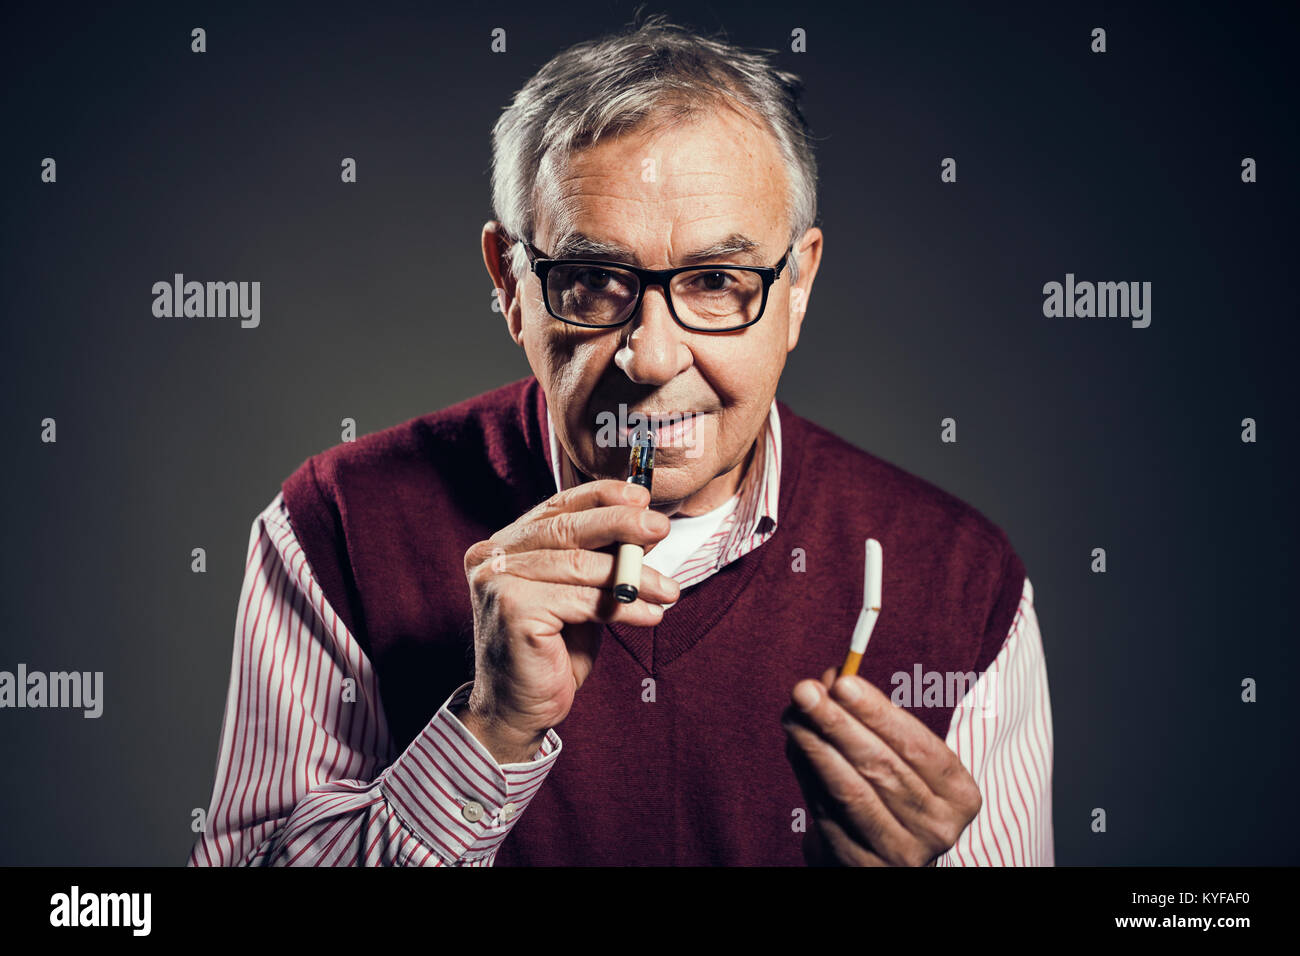 Portrait of senior man who is decided to quit smoking cigarettes in favor of electronic cigarette. - Stock Image